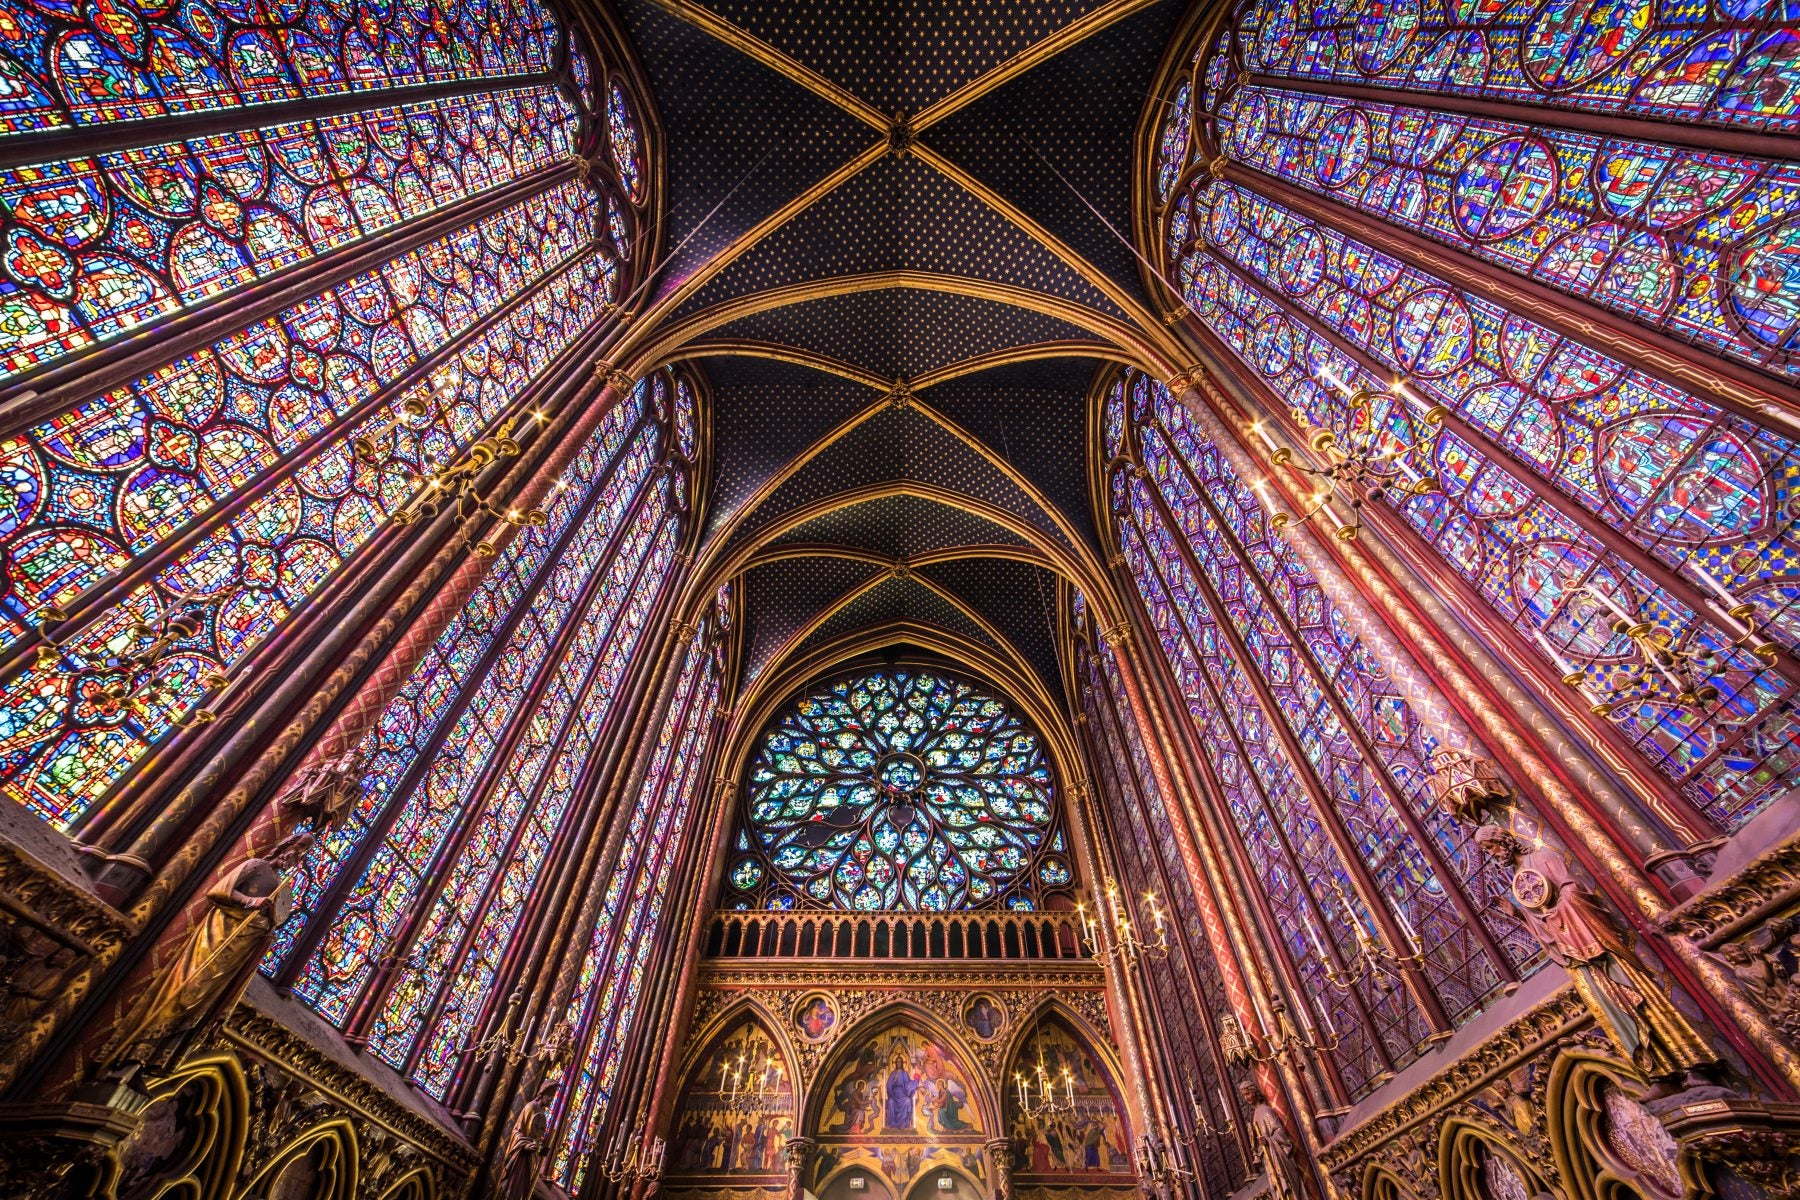 Stained glass ceilings in Sainte-Chappelle